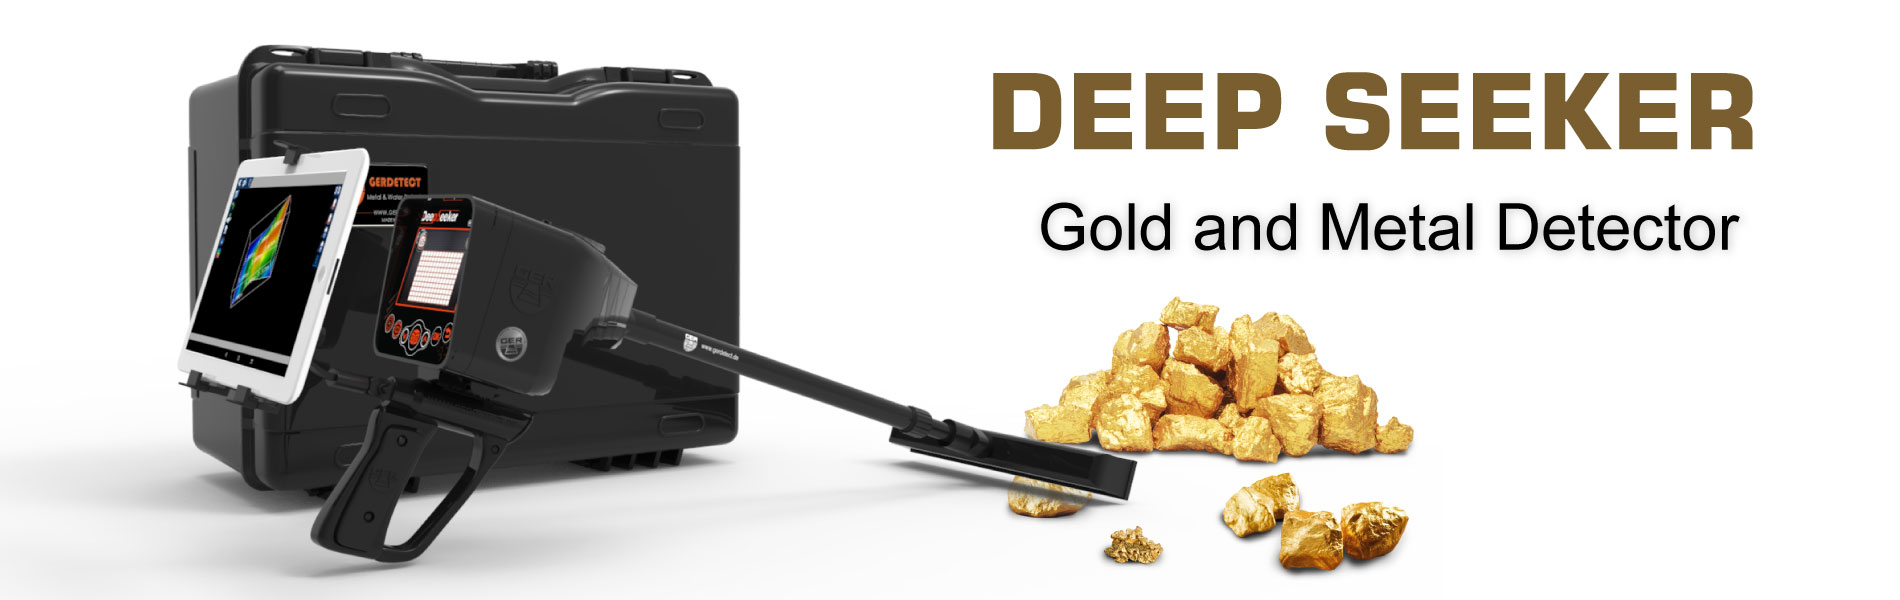 deep seeker device latest gold metal detector